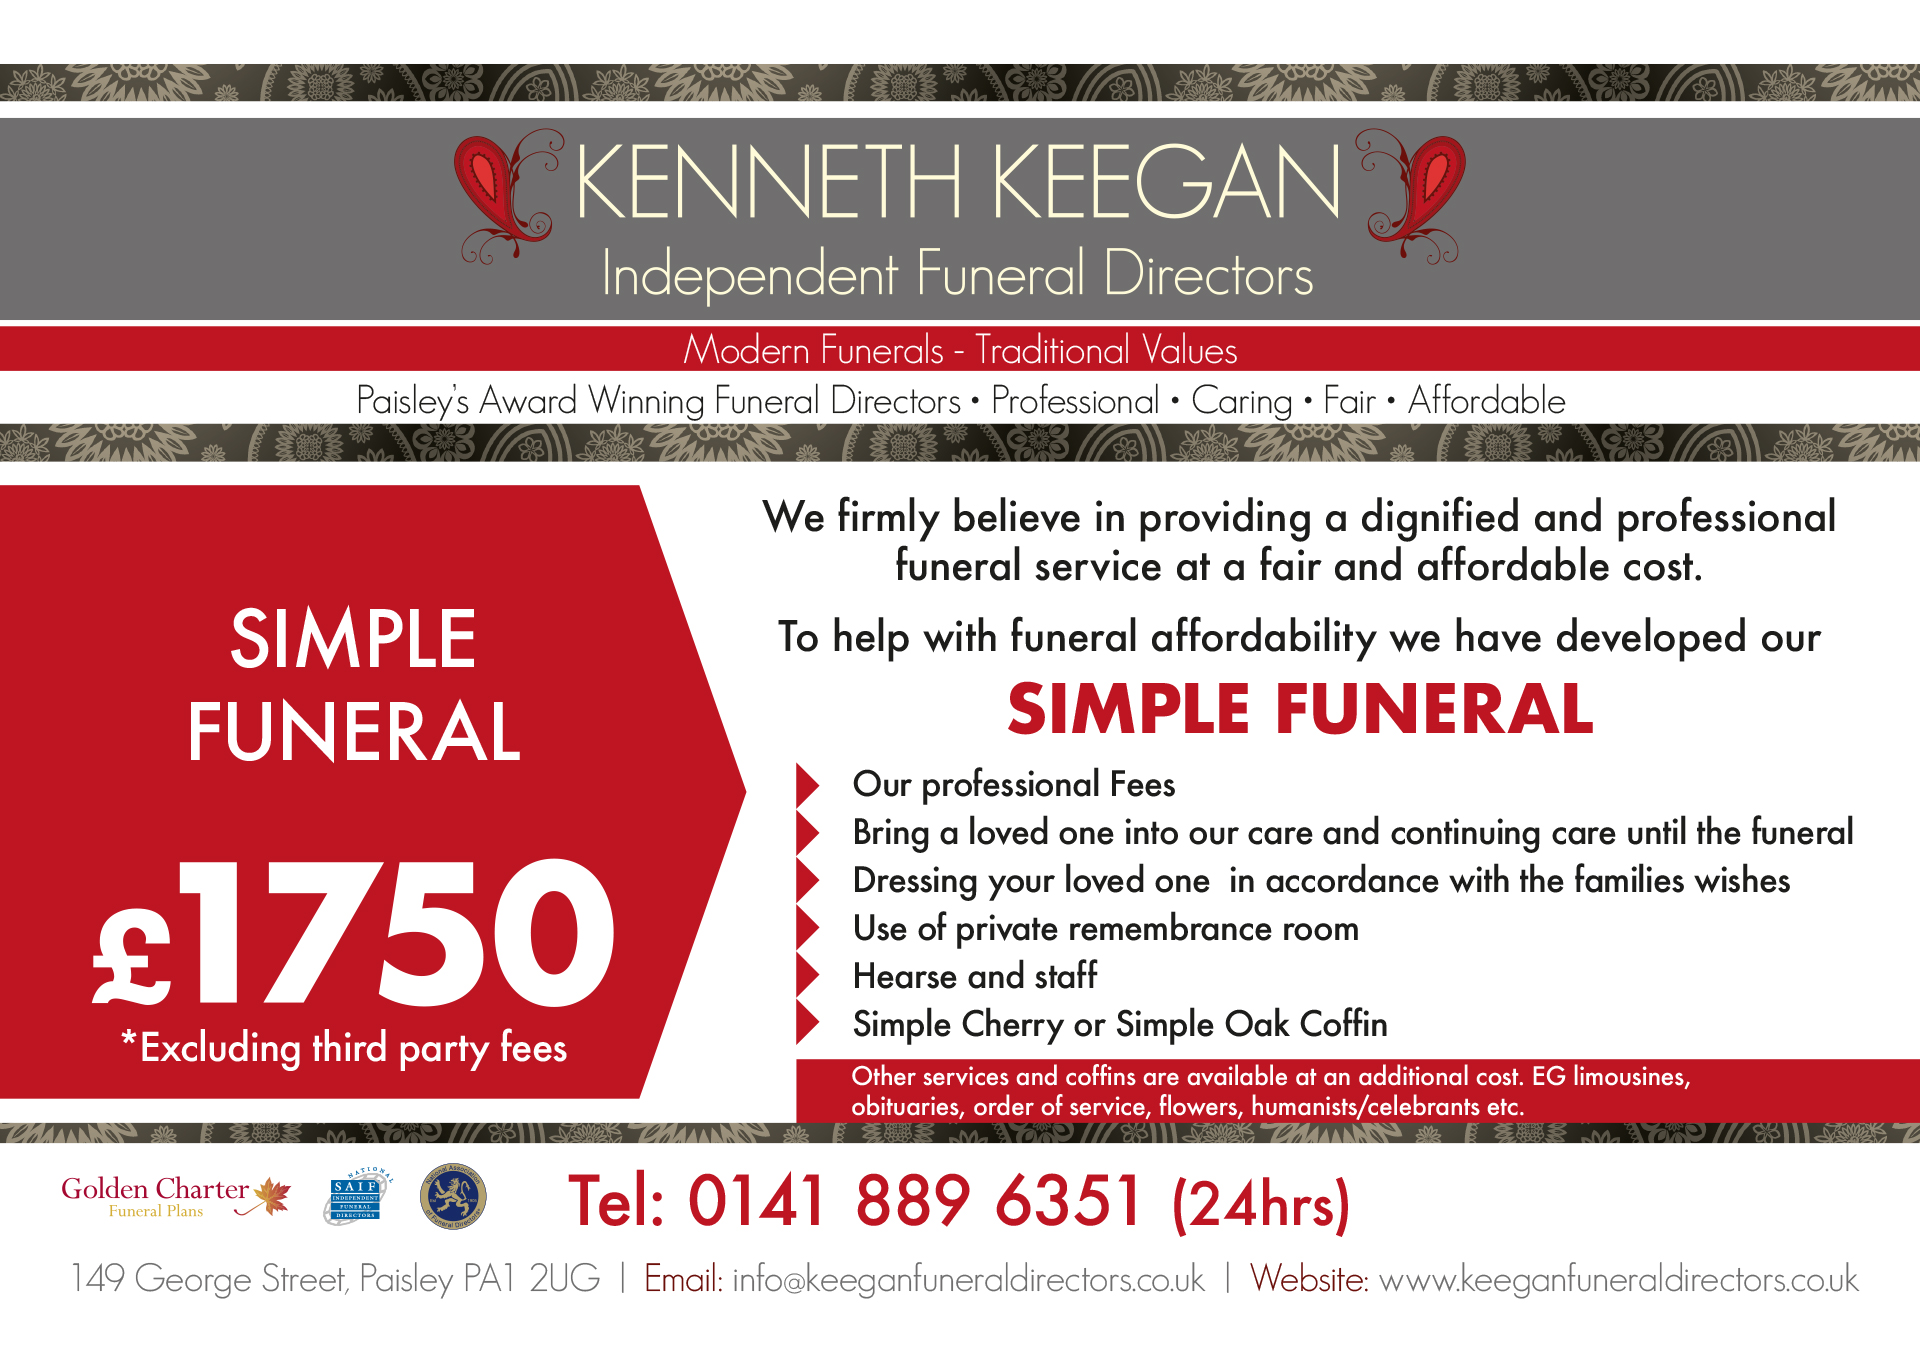 Kenneth-Keegan-Simple-Funeral-A4L-13-11-20